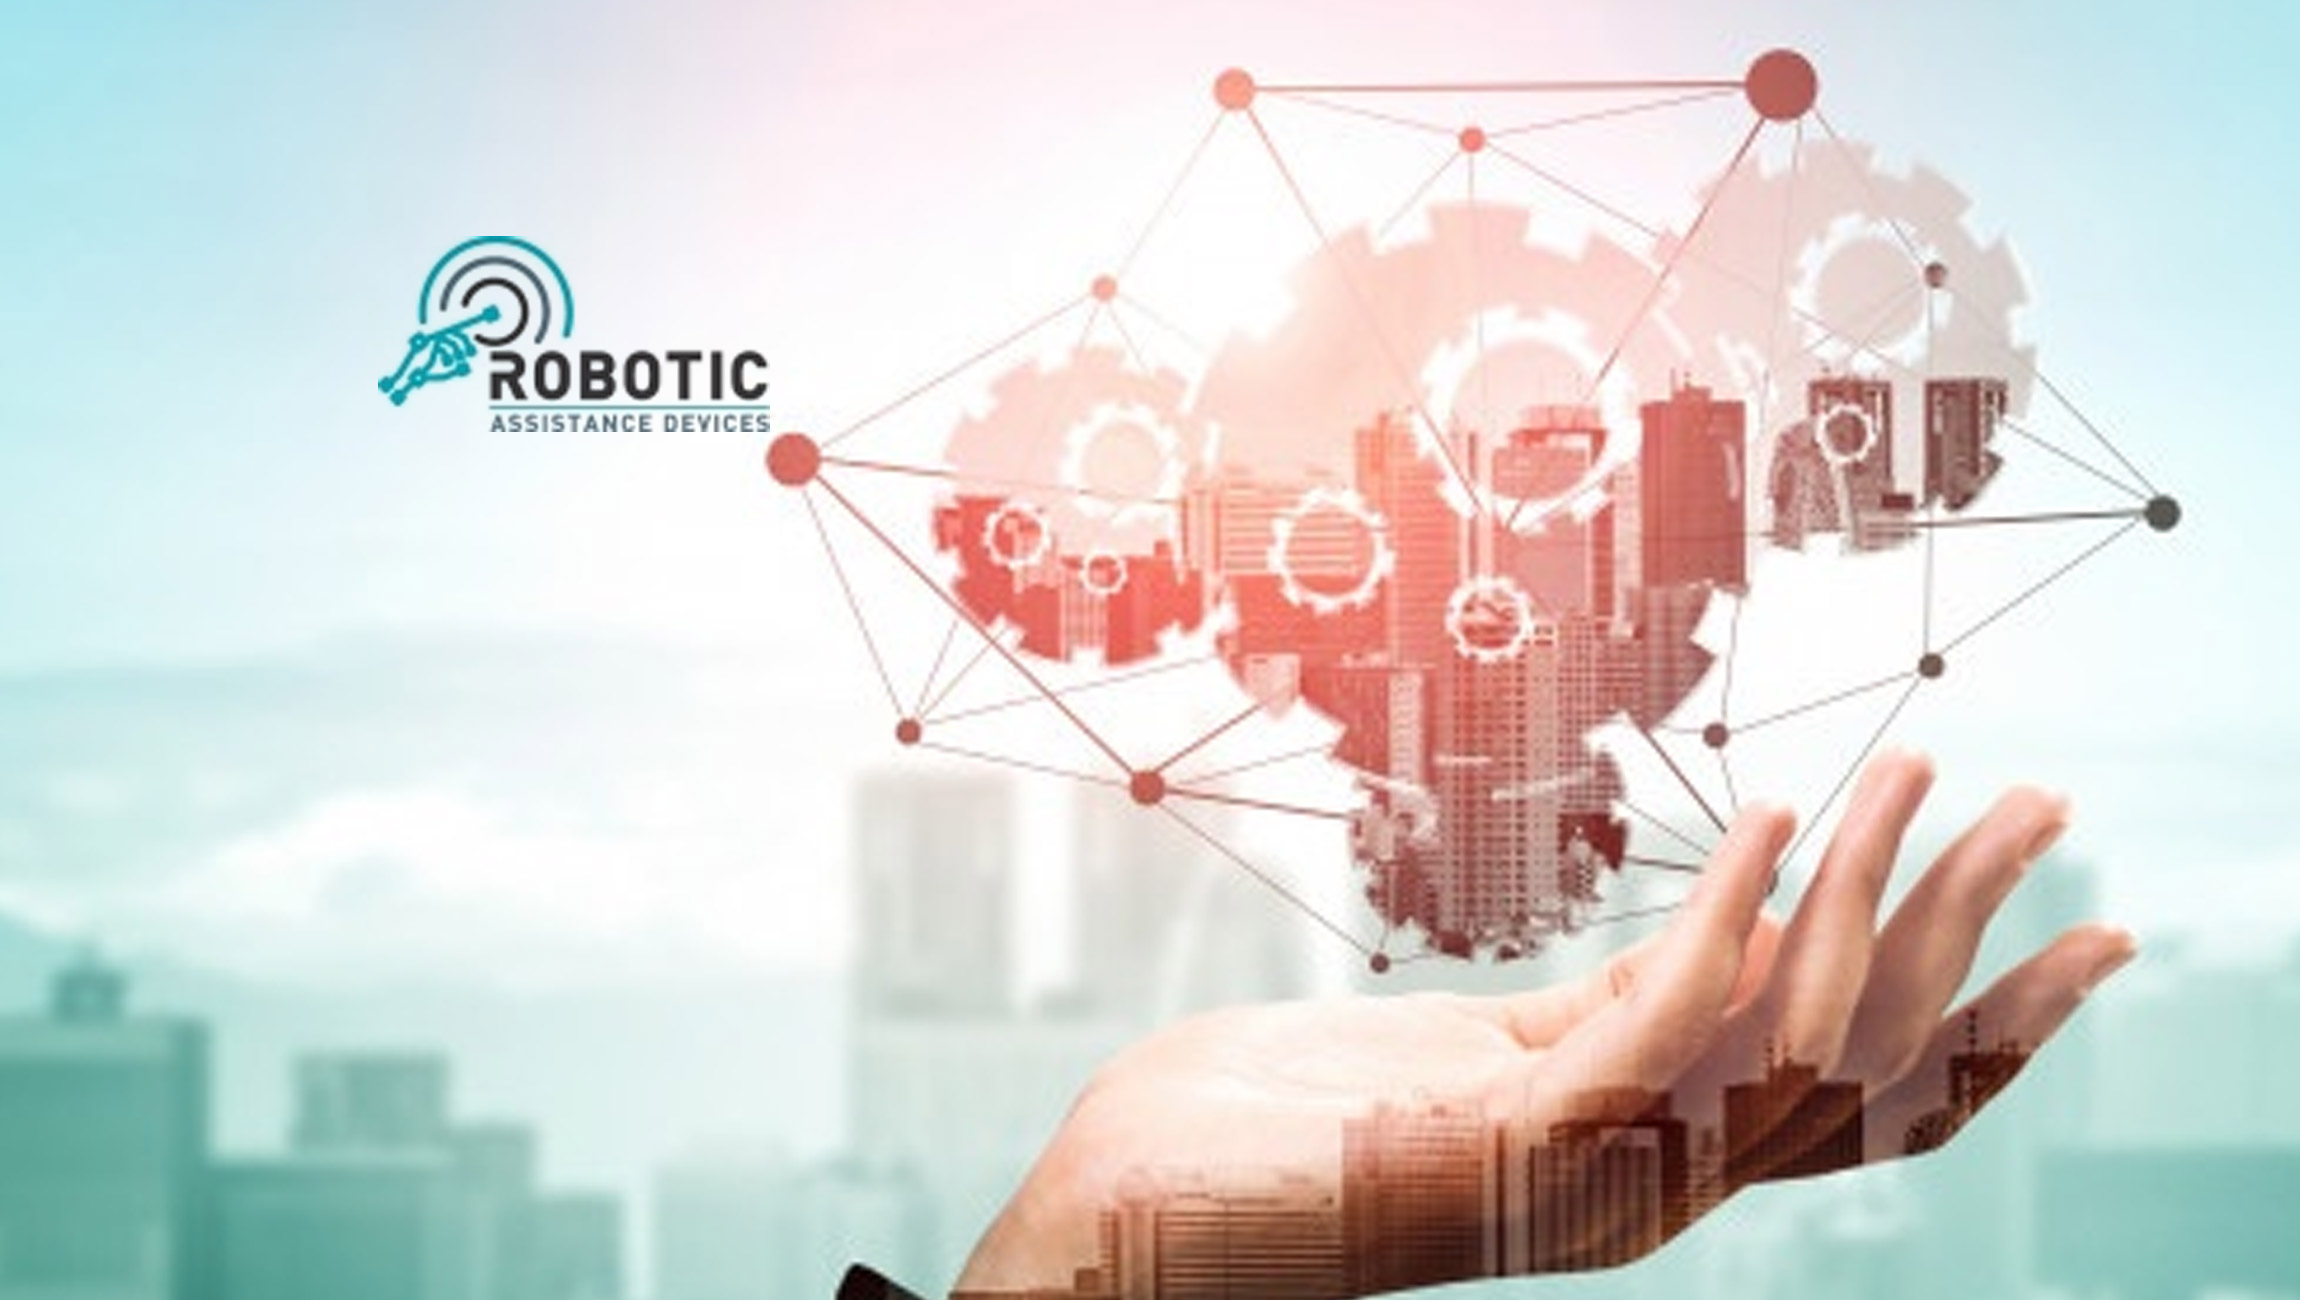 Artificial Intelligence Technology Solutions Announces New Subsidiary Focused on Mobile Robotic Solutions